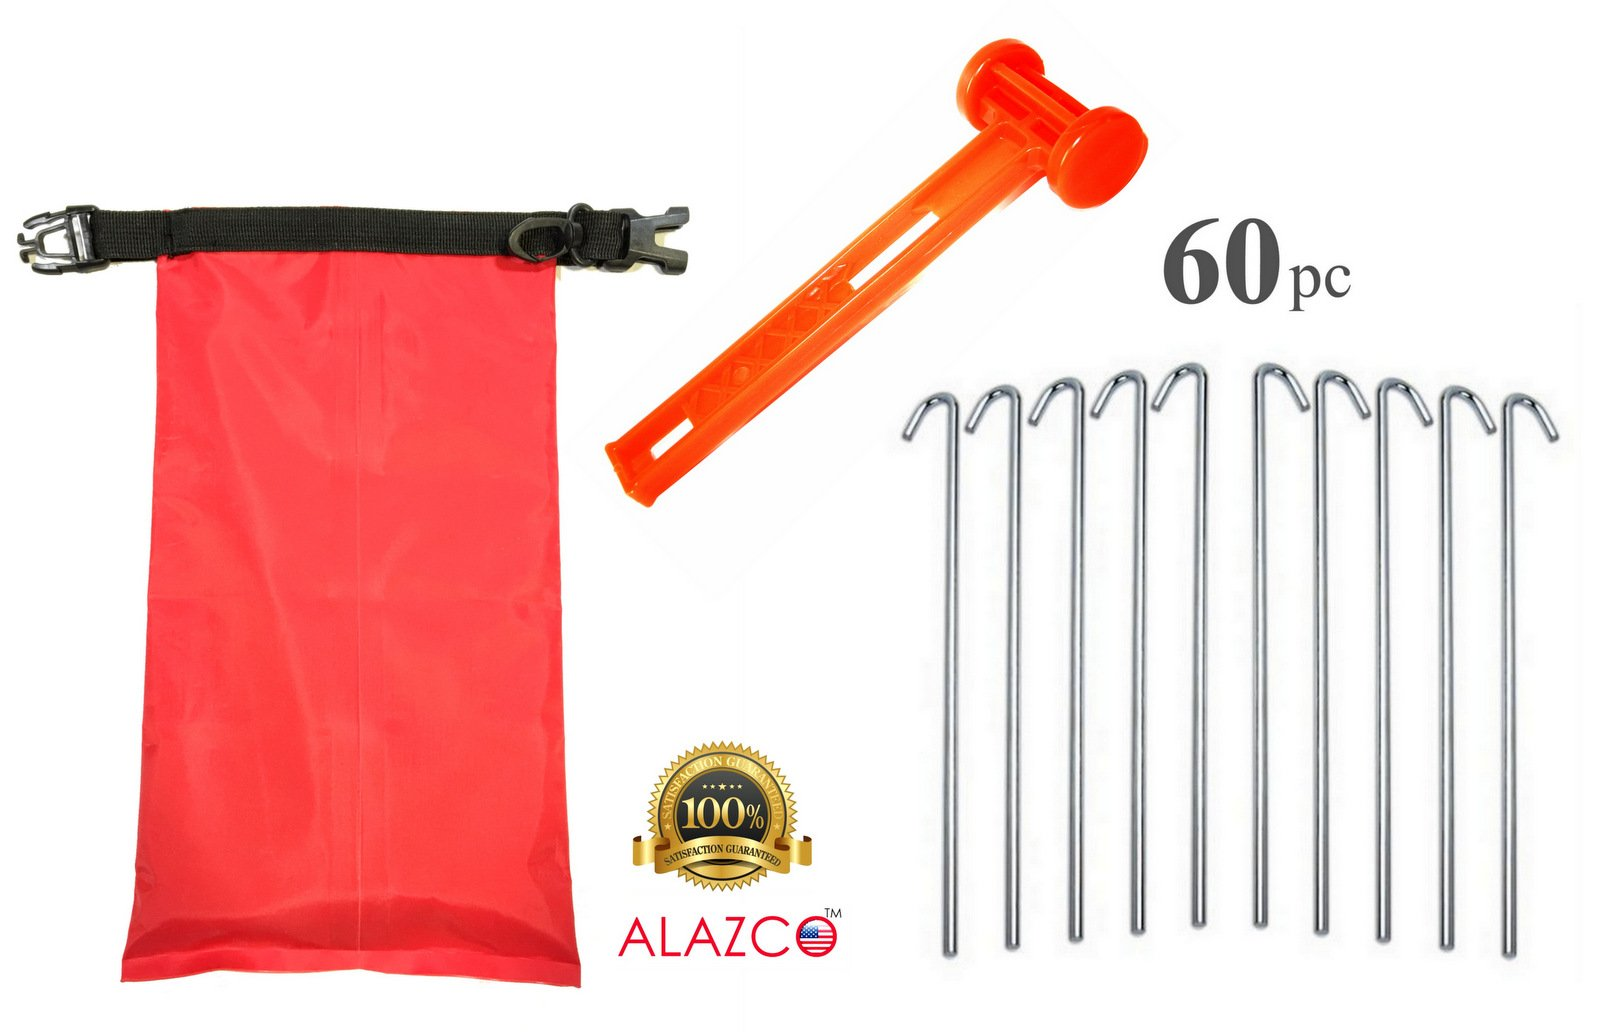 ALAZCO Galvanized Steel Tent Pegs - Garden Stakes -Heavy Duty - Rust Free (60pc Stakes, 1 Mallet & Bag) by ALAZCO